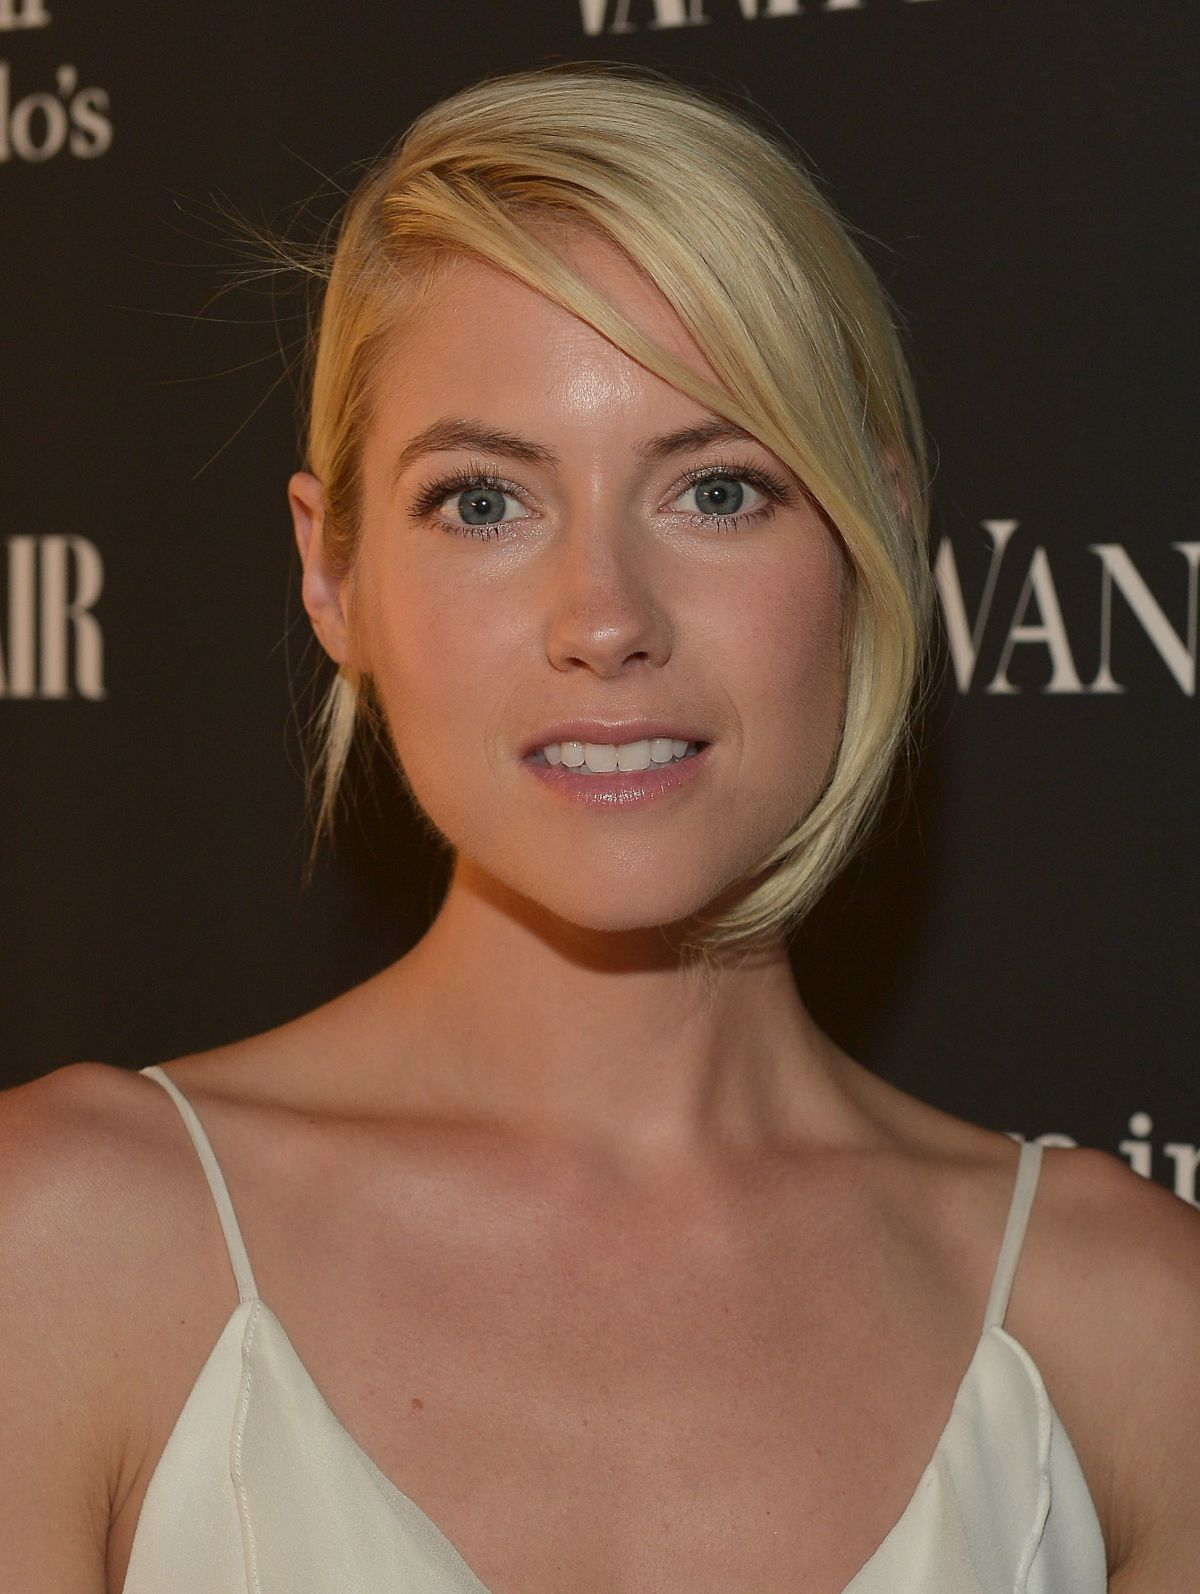 LAURA RAMSEY at Vanity Fair Celebrates Opening of Vera Wang in Beverly Hills